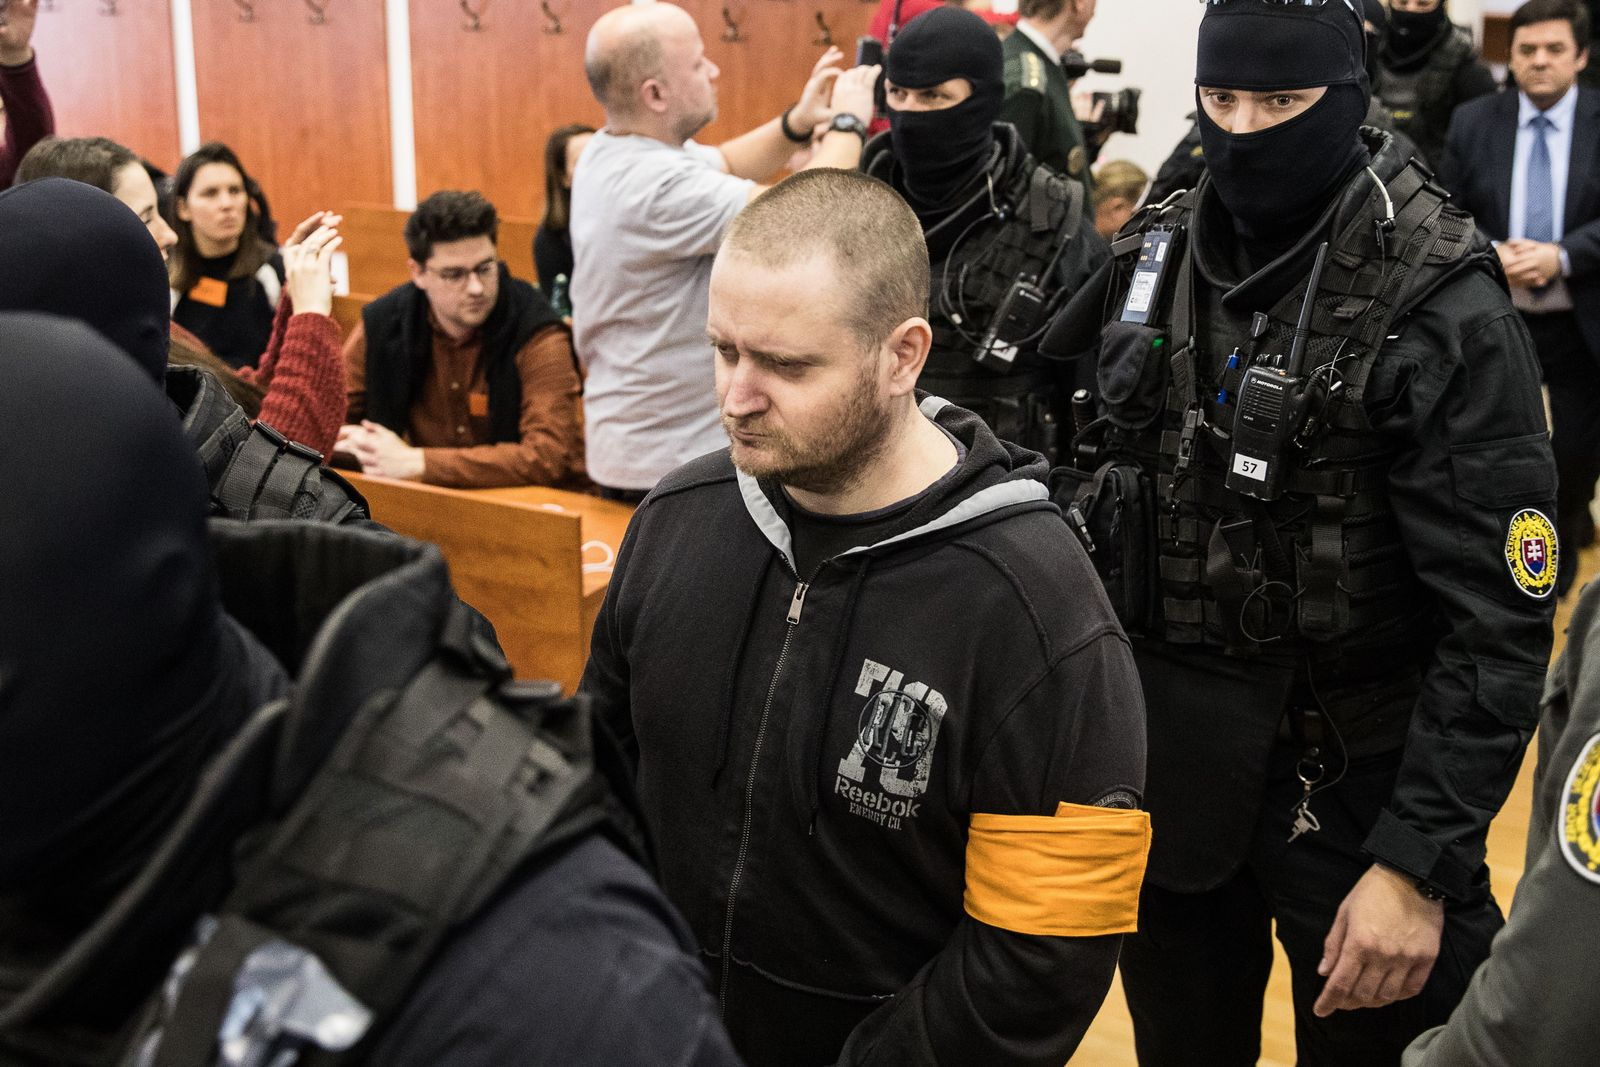 Trial concerning the murder of Slovak journalist Jan Kuciak, in Pezinok, Slovakia Slovak Republic - 13 Jan 2020